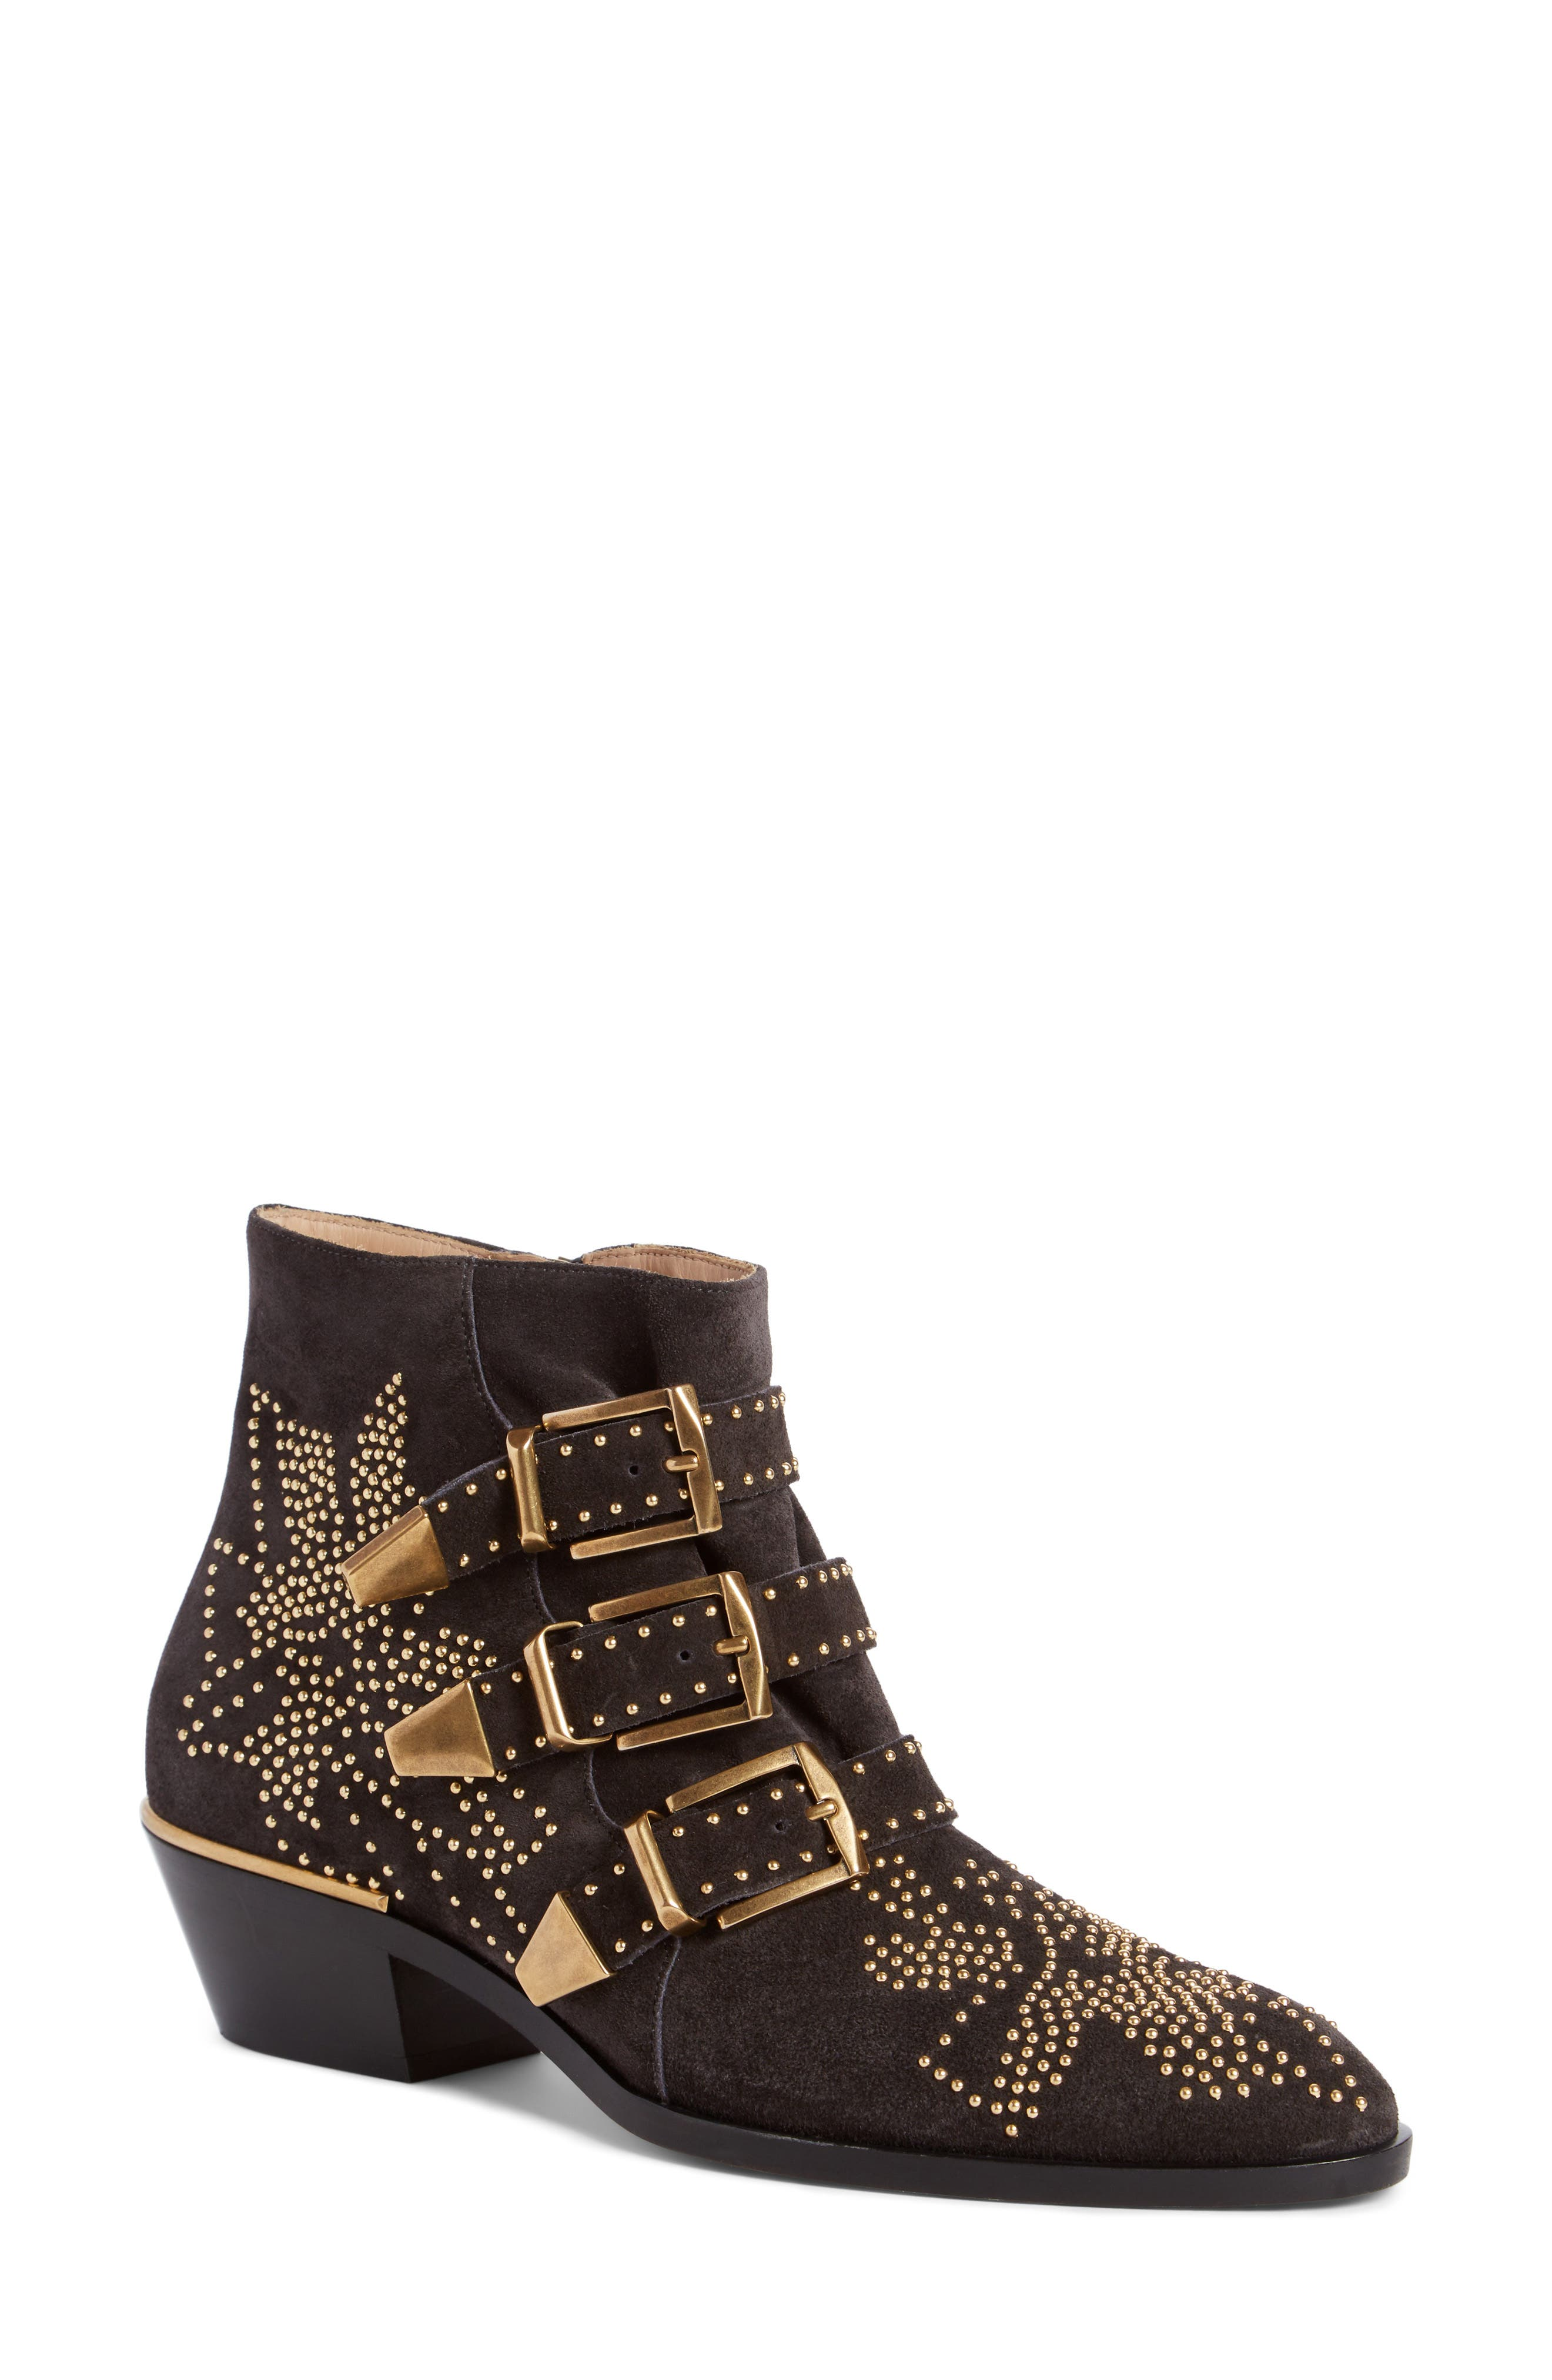 Alternate Image 1 Selected - Chloé Susanna Stud Buckle Bootie (Women)